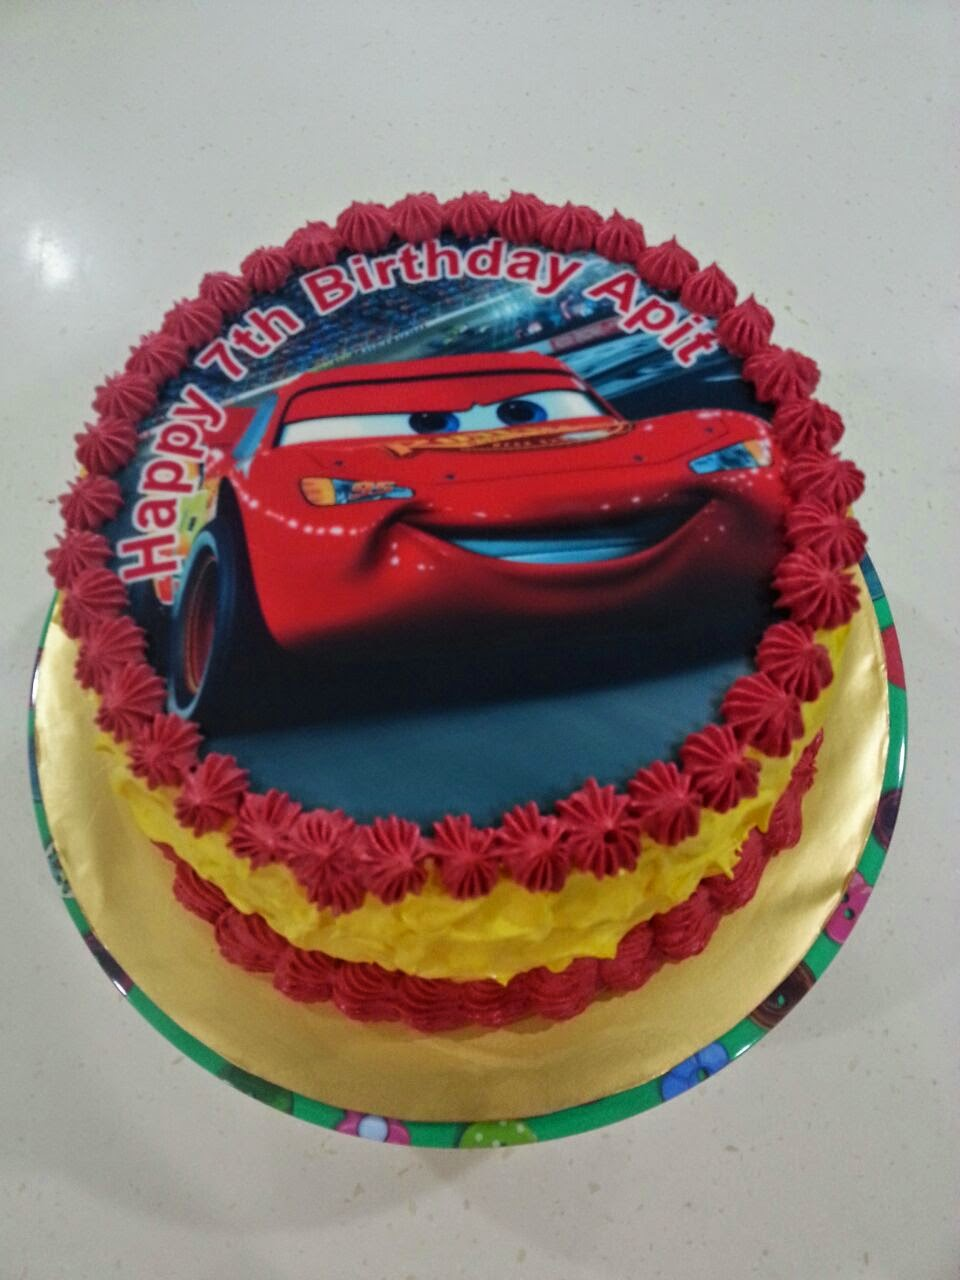 Edible Cake Images Cars : Zeti Hot Oven: 365 Hot Oven : Edible Cars SMBC Cake